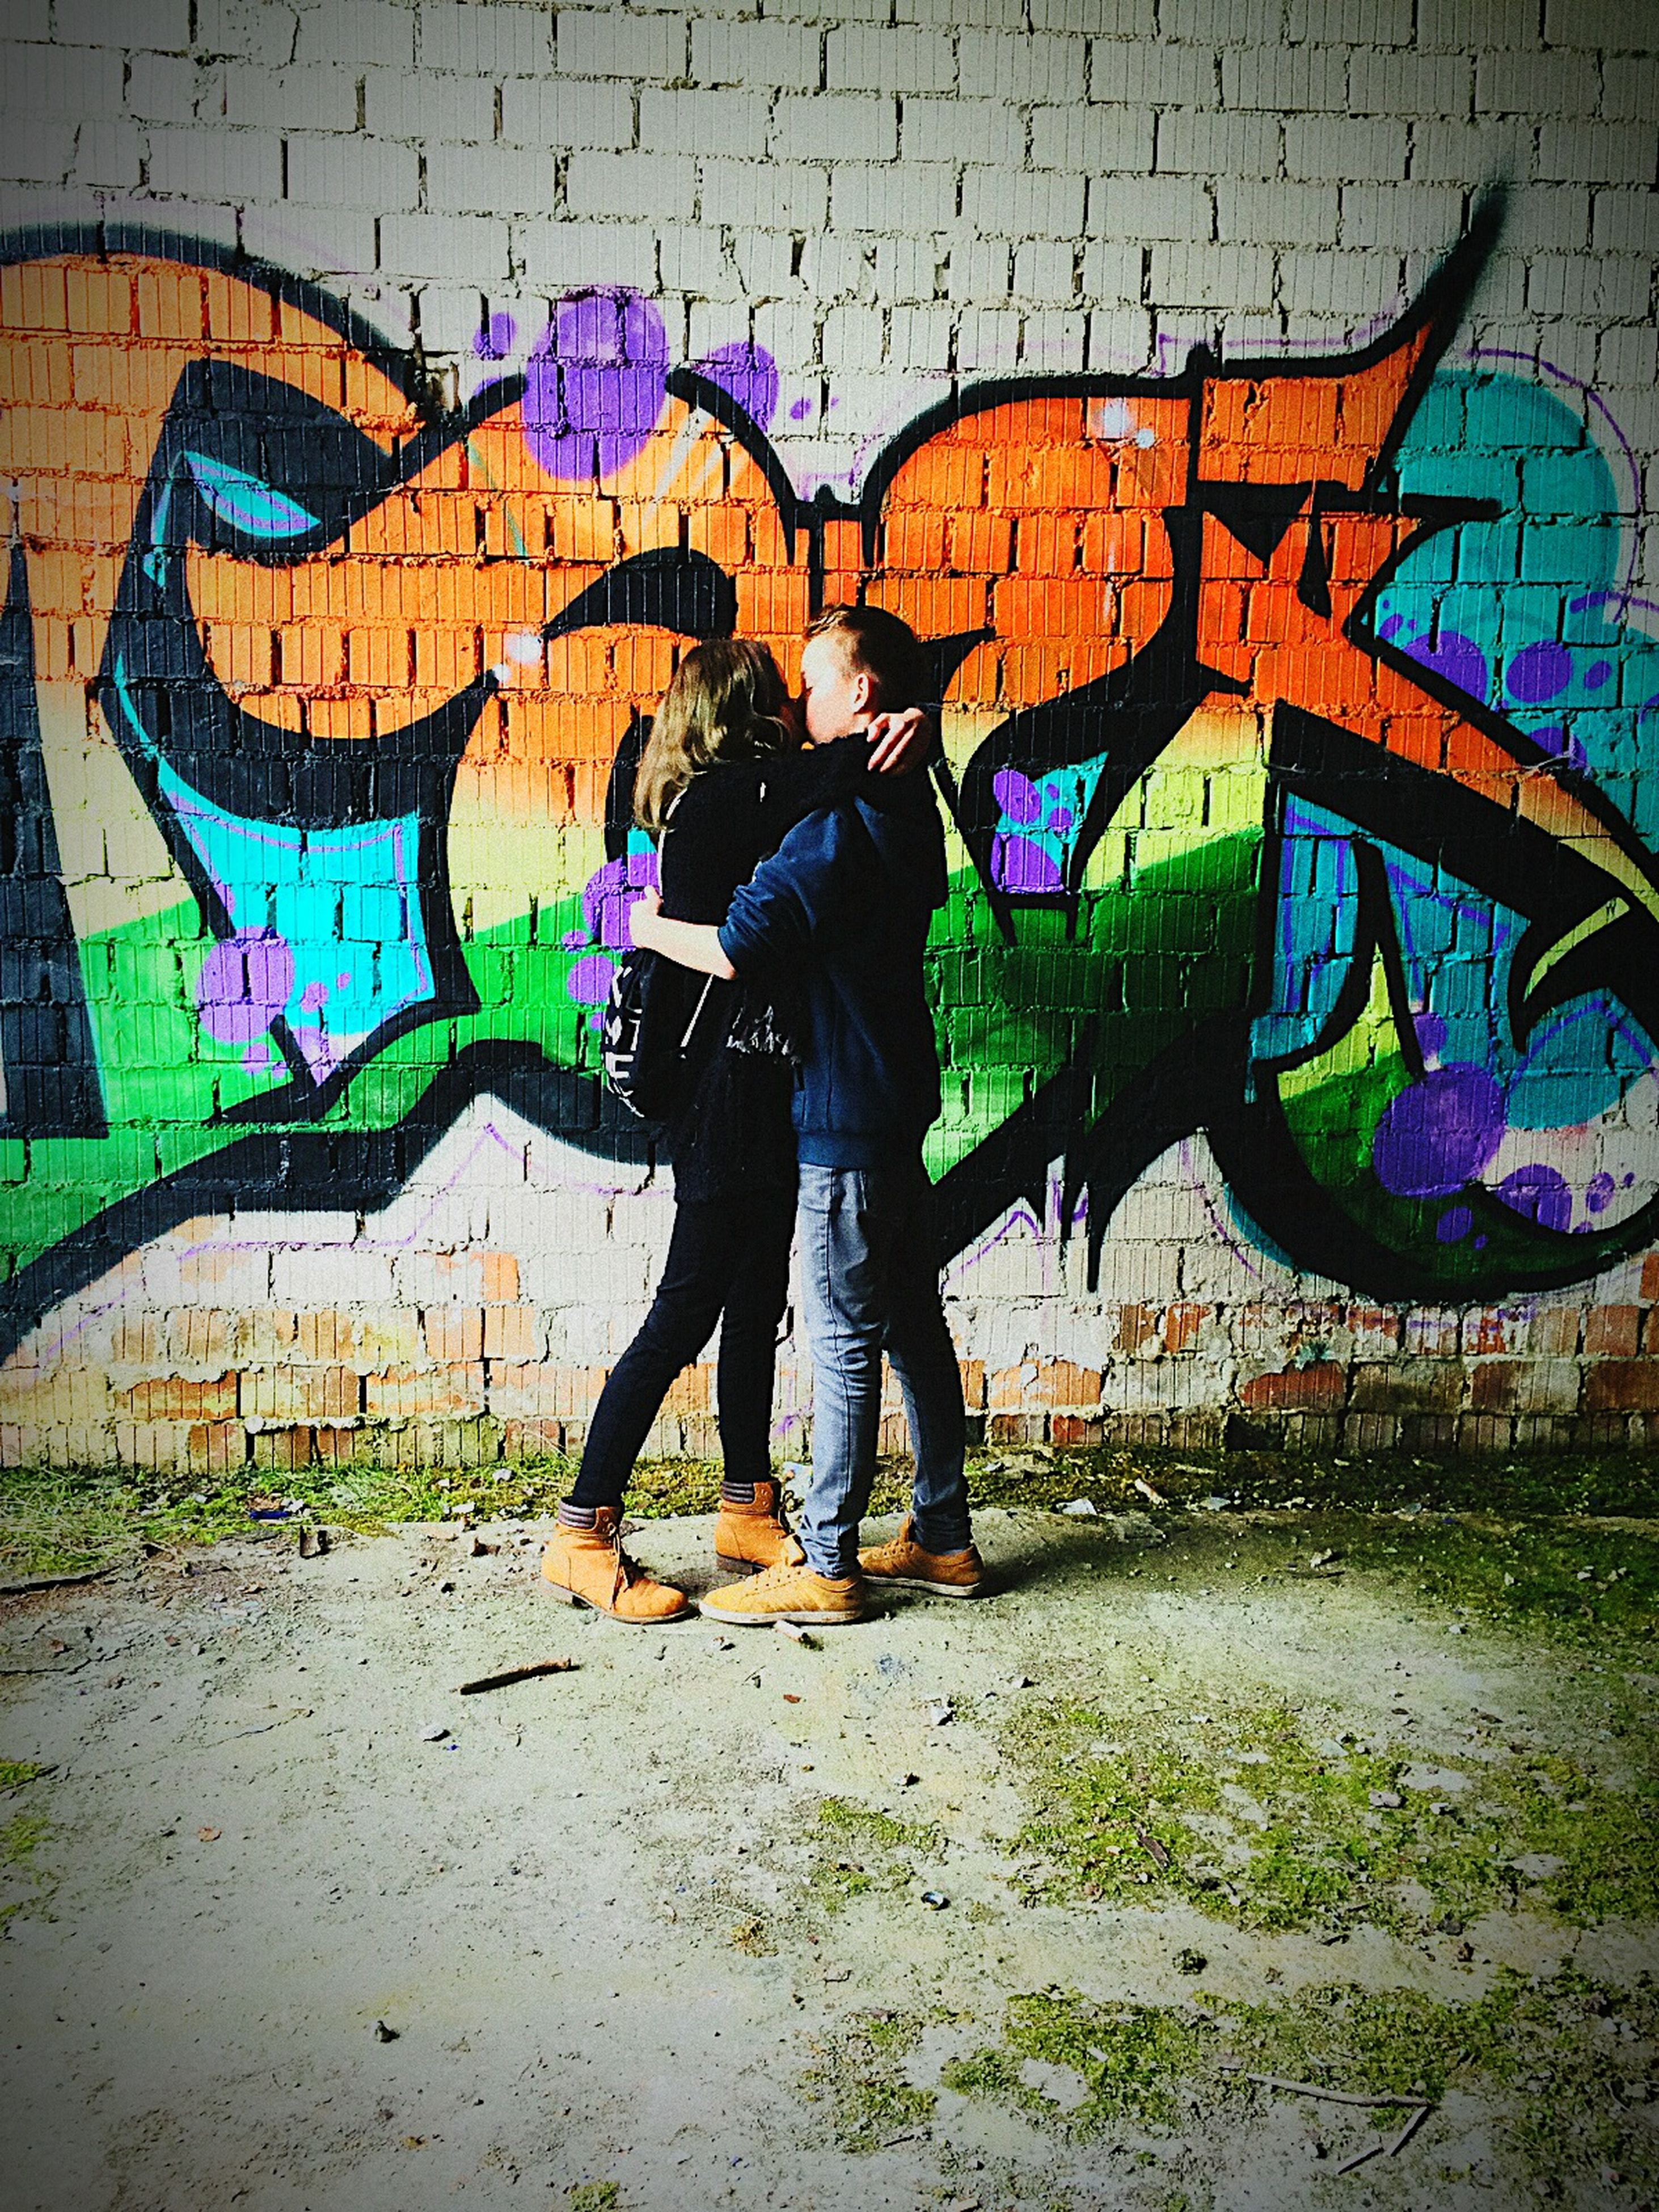 graffiti, art, creativity, art and craft, wall - building feature, built structure, architecture, multi colored, full length, human representation, lifestyles, standing, leisure activity, street art, building exterior, casual clothing, men